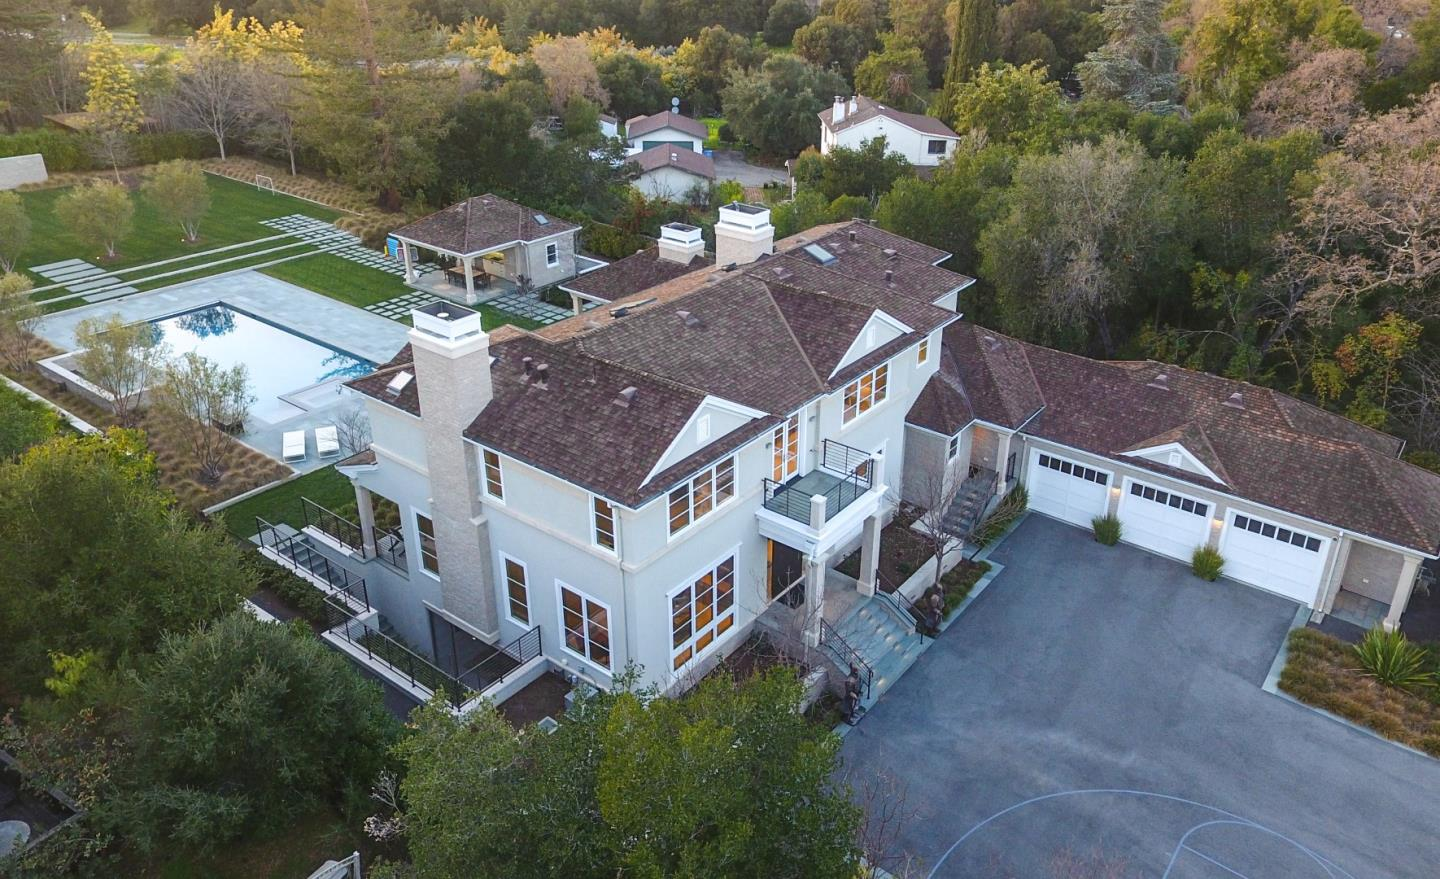 Casa Unifamiliar por un Venta en 4174 Oak Hill Avenue 4174 Oak Hill Avenue Palo Alto, California 94306 Estados Unidos